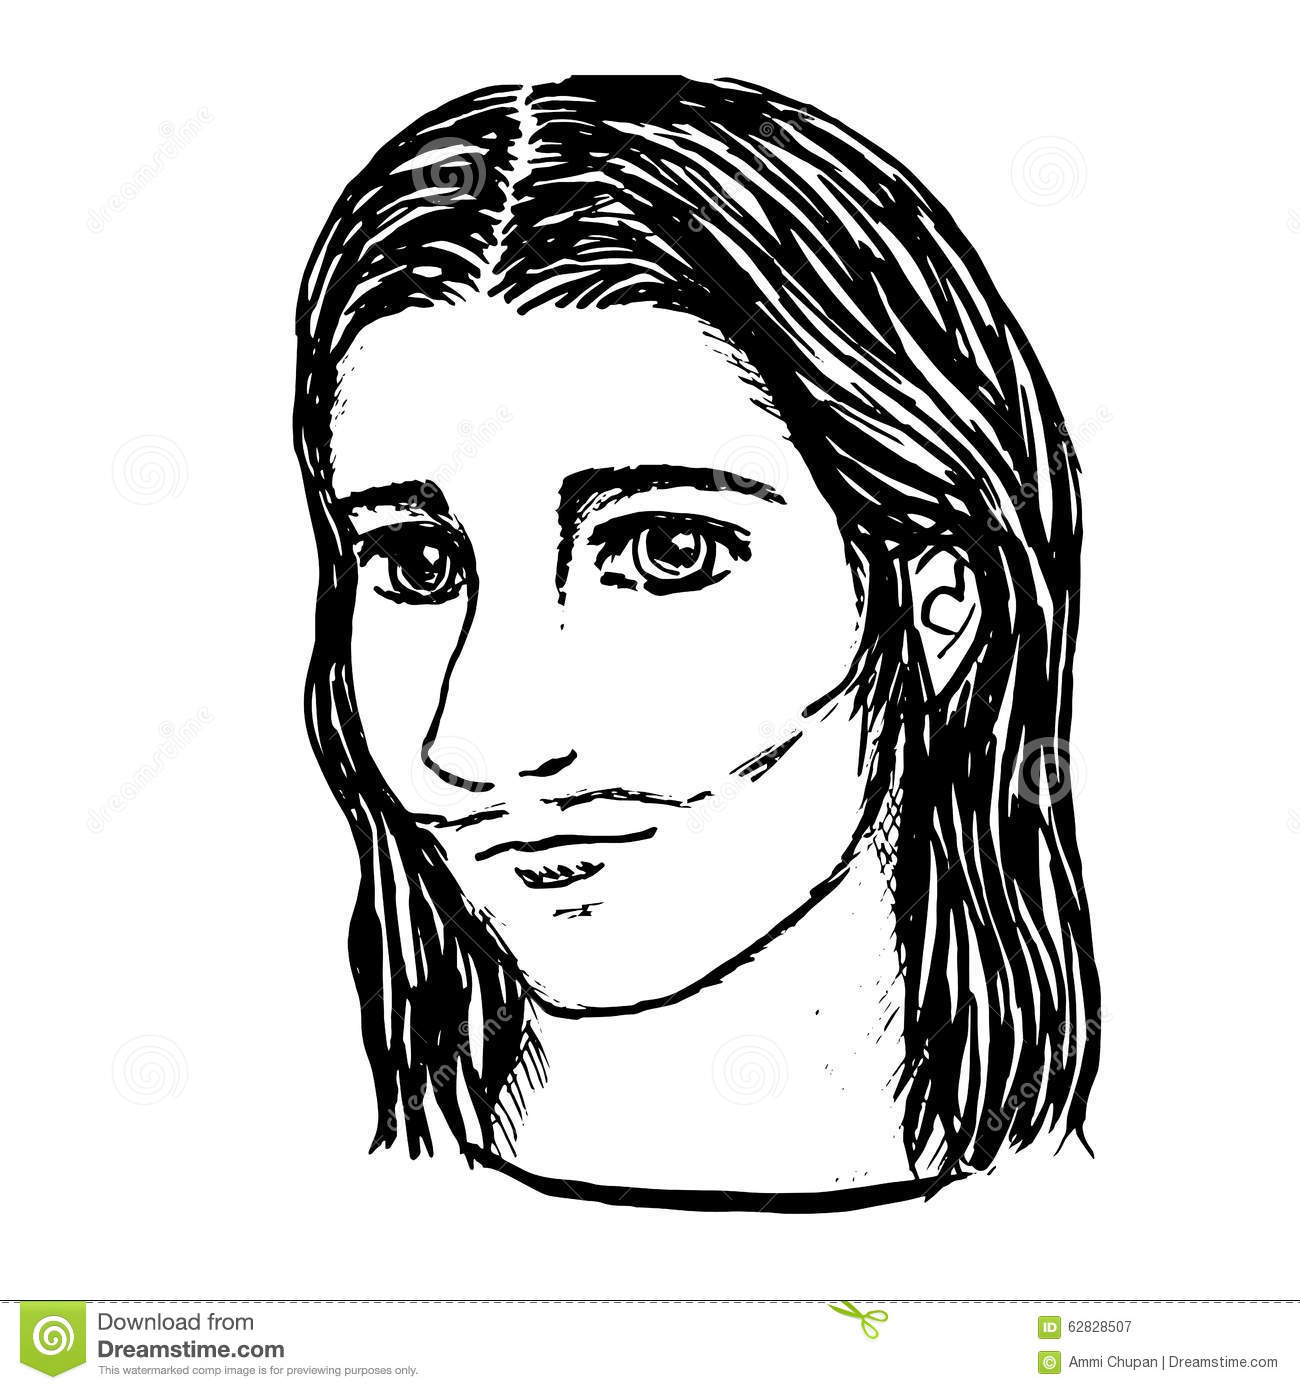 Line Drawing Of Jesus Face : Line art illustration of jesus face by hand drawn stock